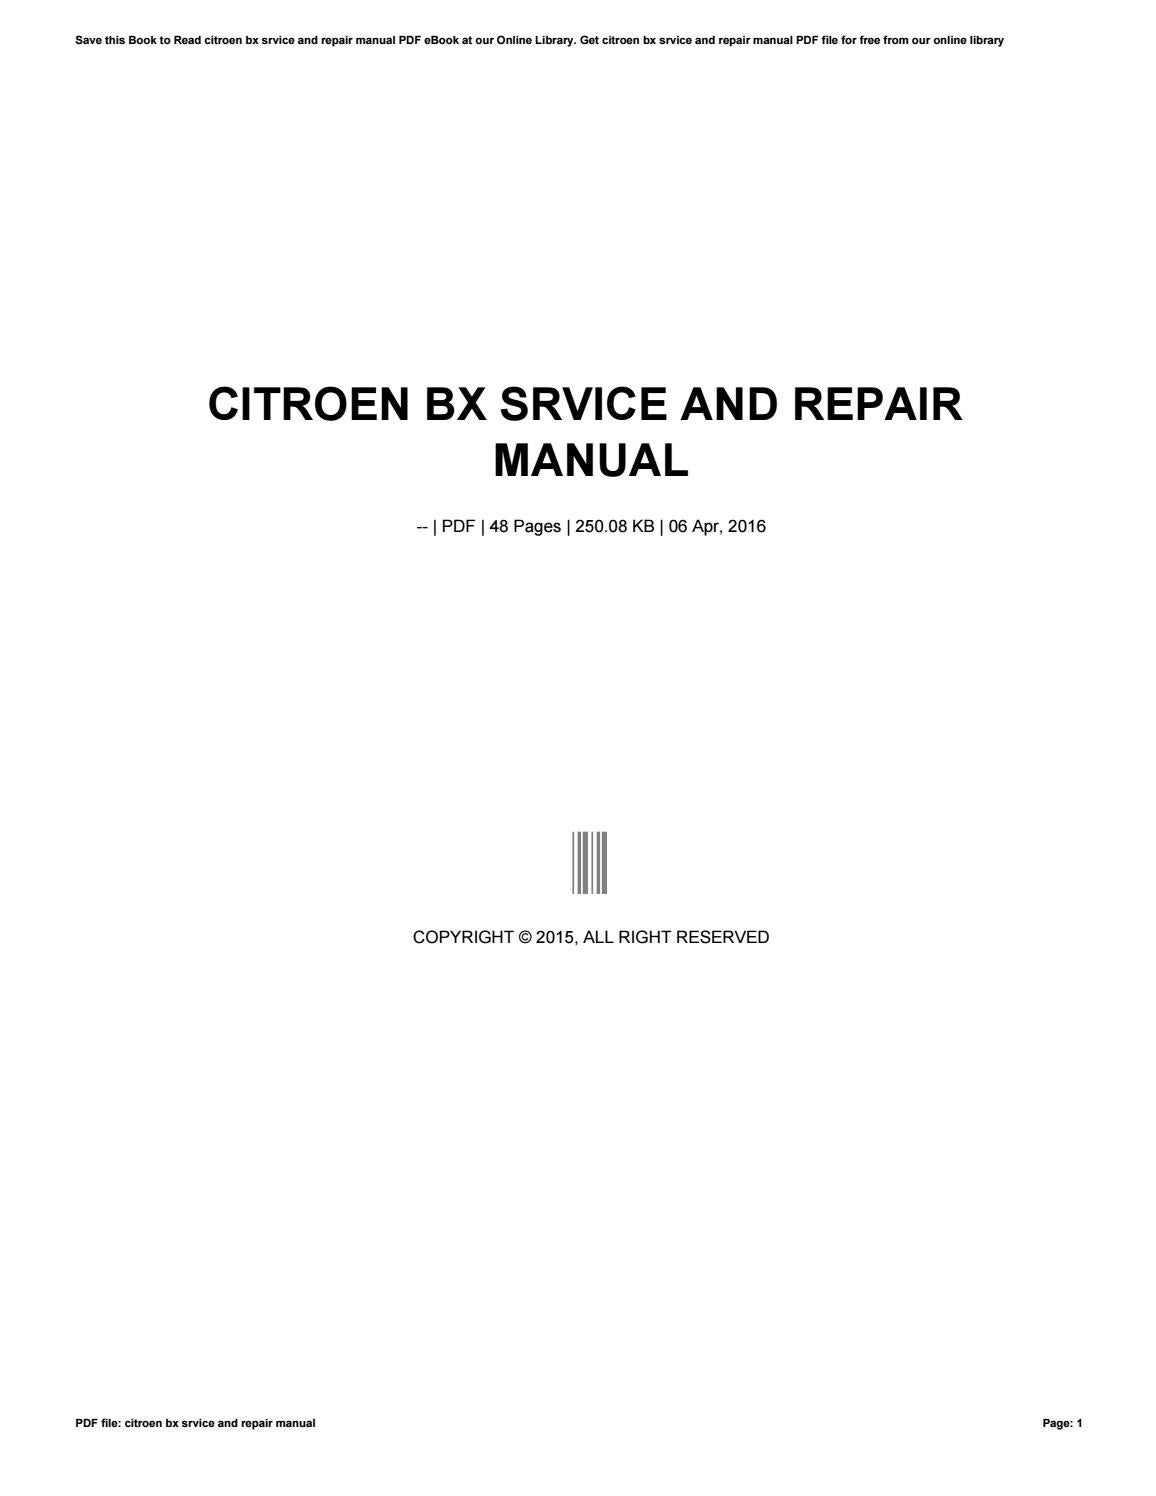 haynes manual for citroen bx ebook